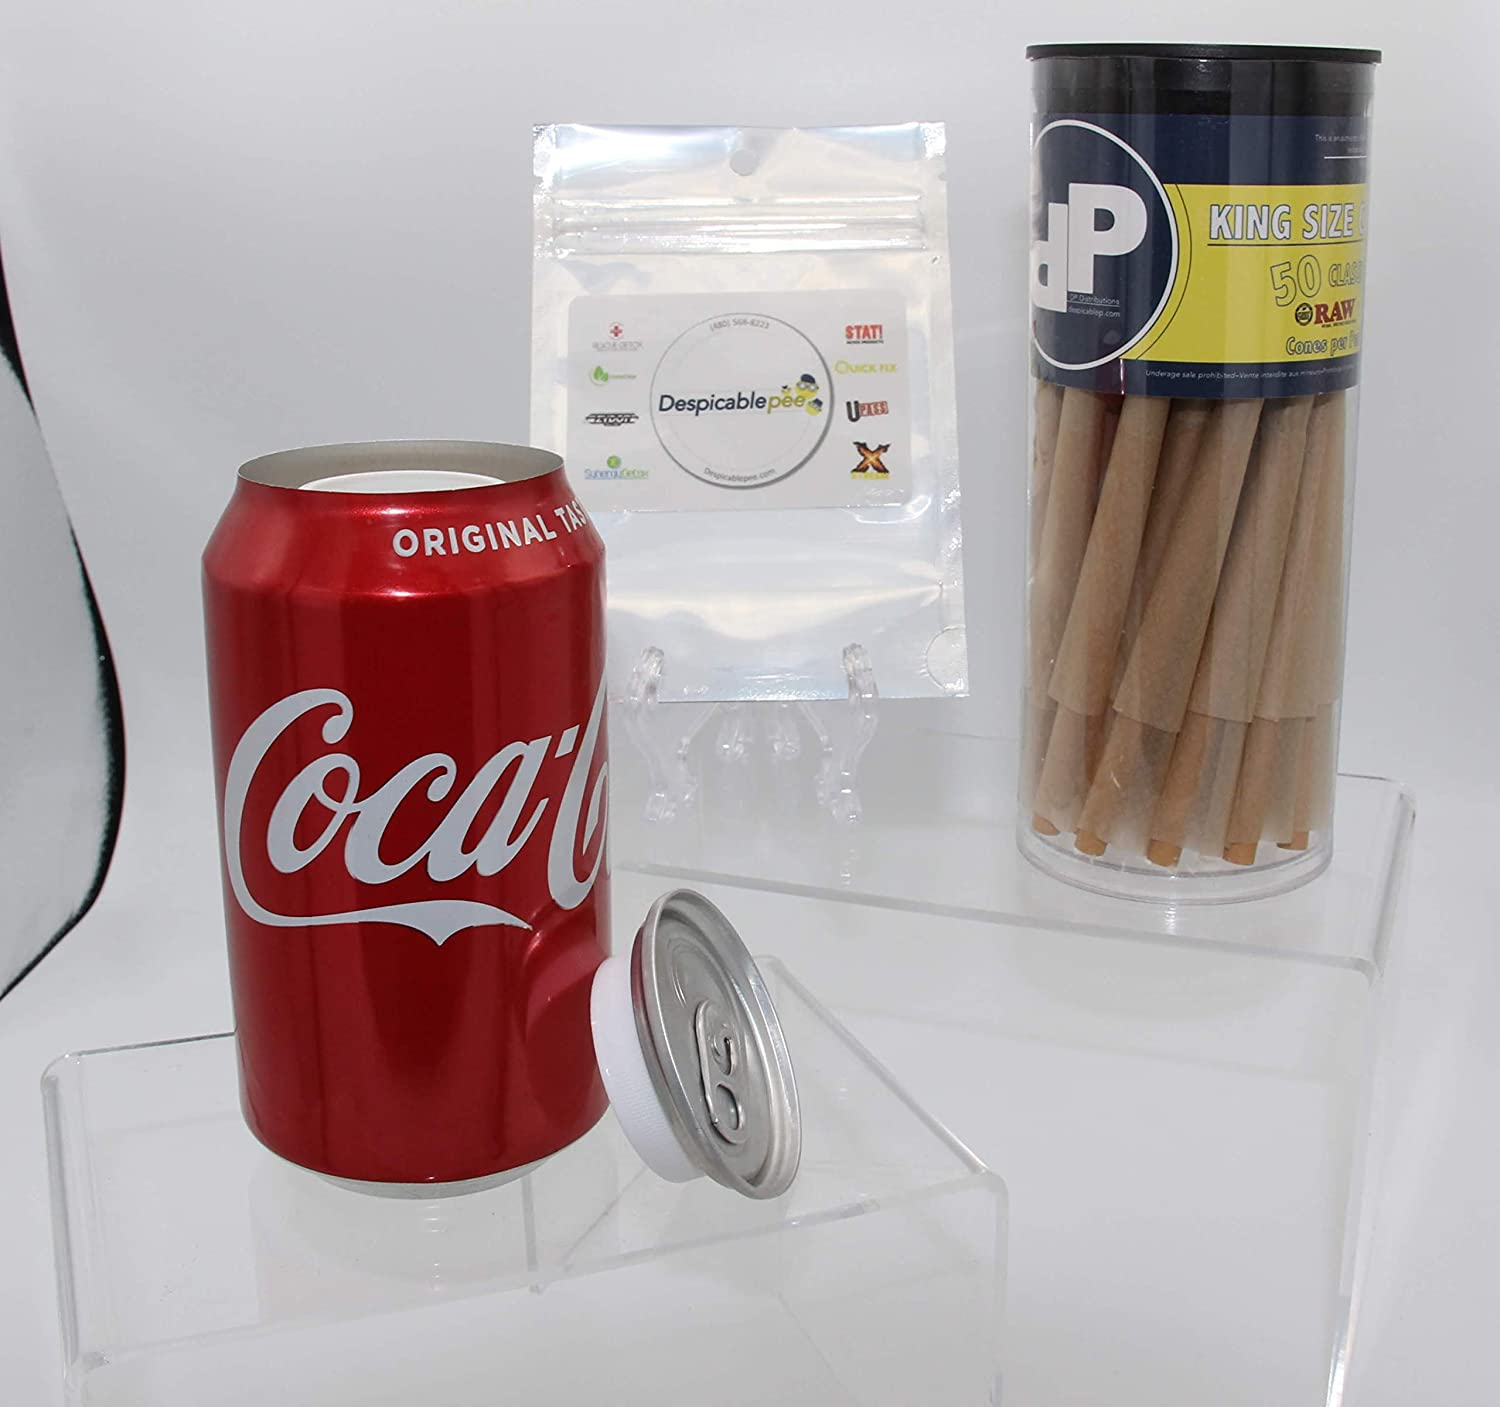 Coca-Cola Can Sale item Diversion Safe 50ct Distribut Toob Sac DP price by